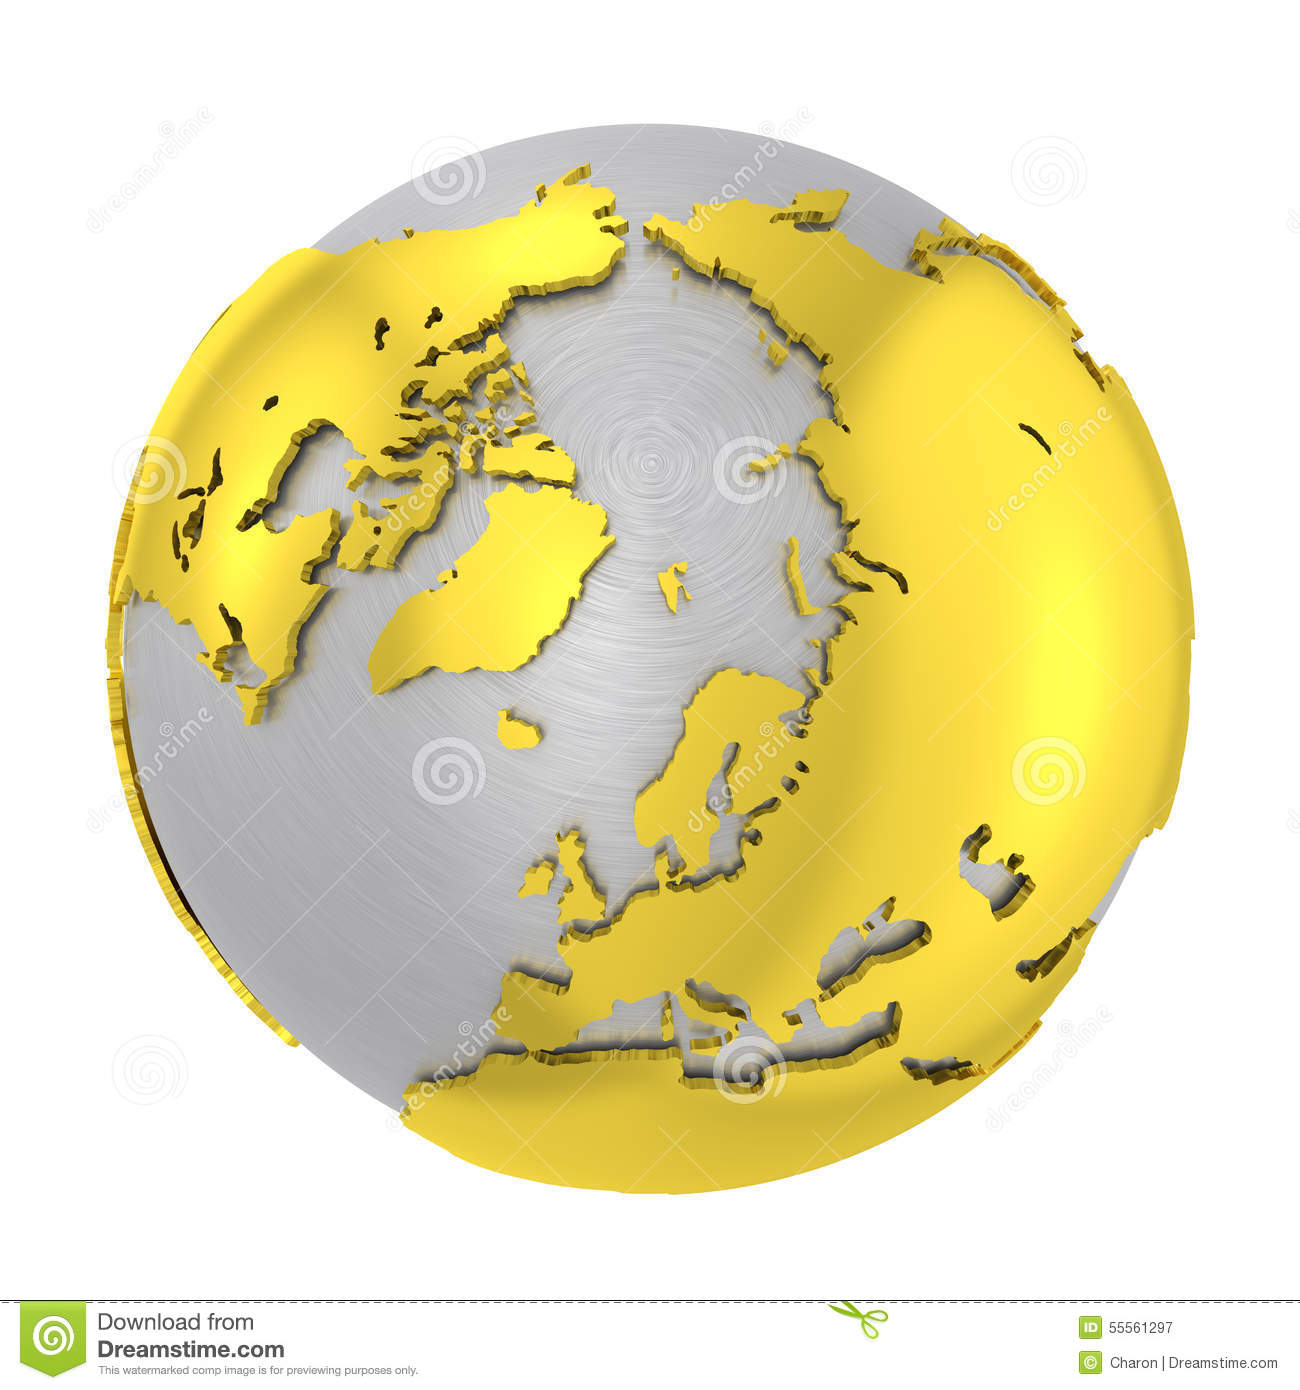 World map with highlighted continents on the globe stock vector brushed steel 3d globe gold earth crust royalty free stock photography gumiabroncs Gallery